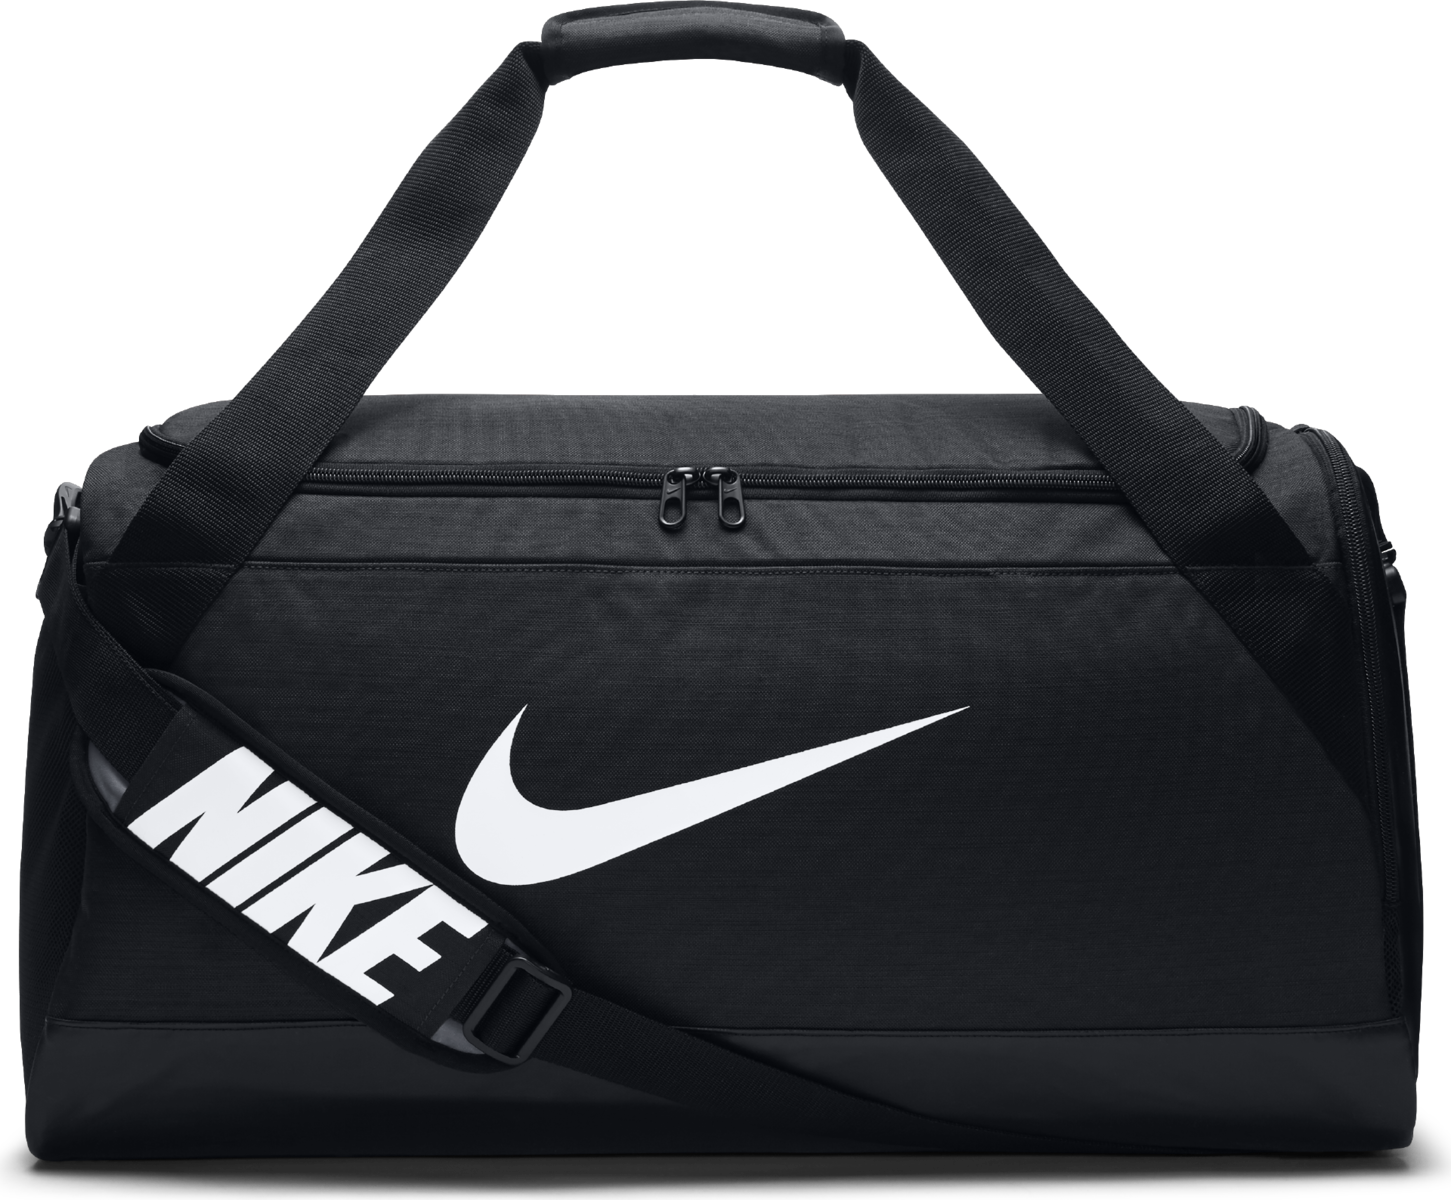 Pin By Mohamad On Intersport Duffel Bag Gym Bag Bags